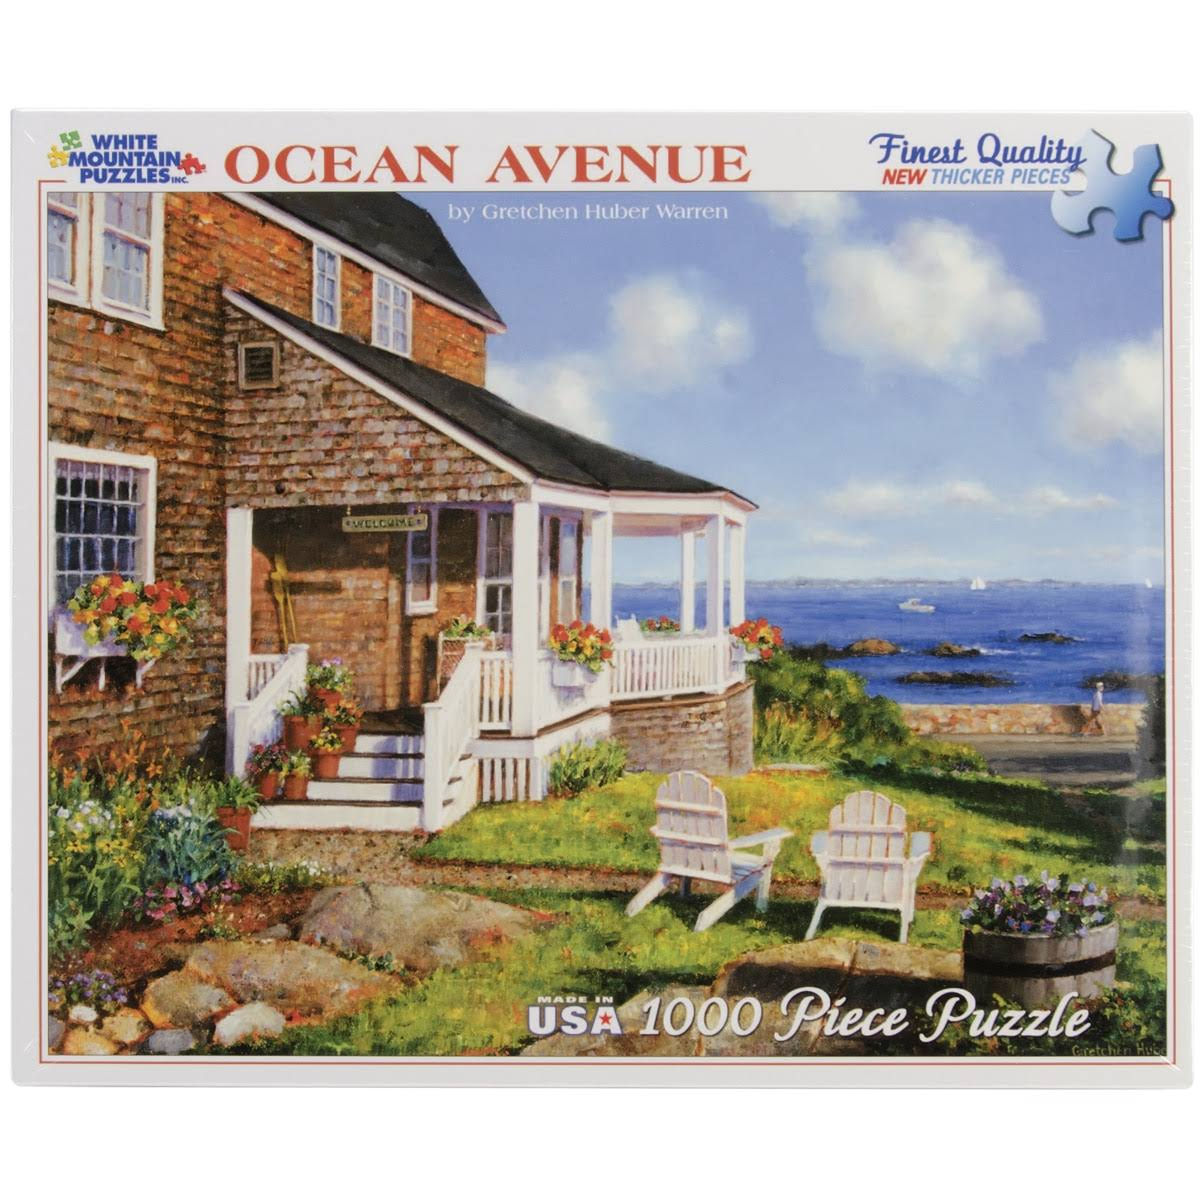 White Mountain Jigsaw Puzzle - 1000pcs, 60cm x 80cm, Ocean Avenue